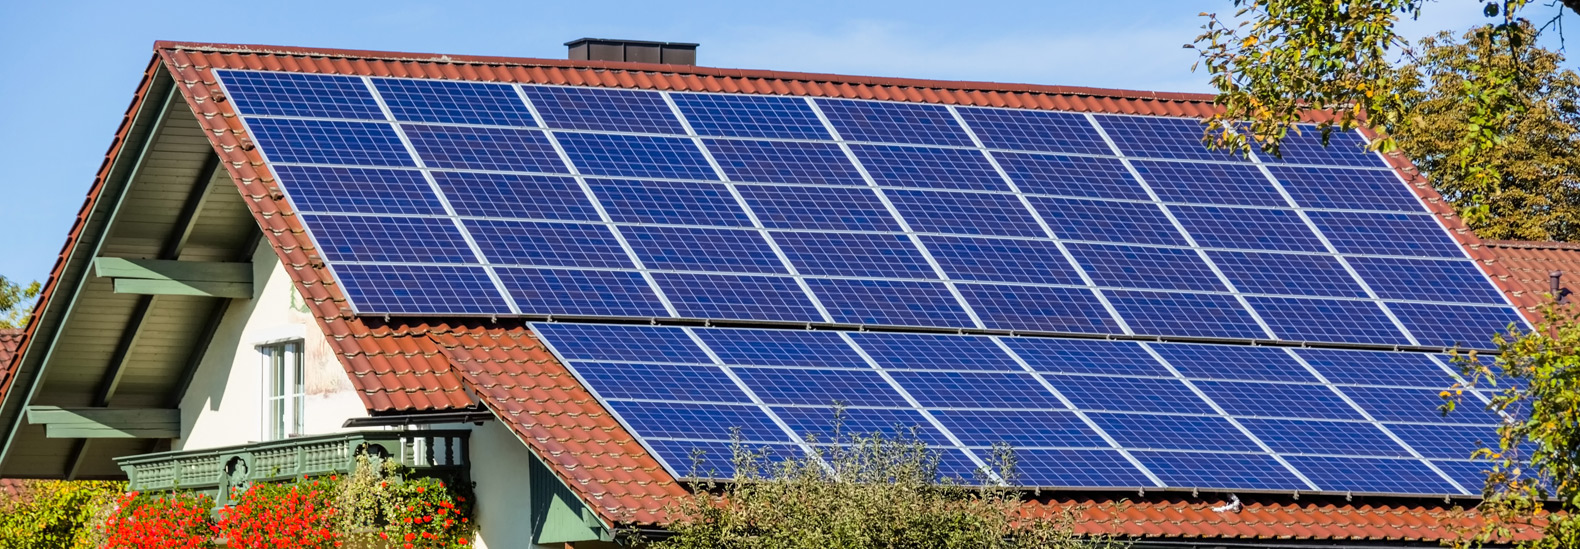 Solar power prices expected to drop further this year